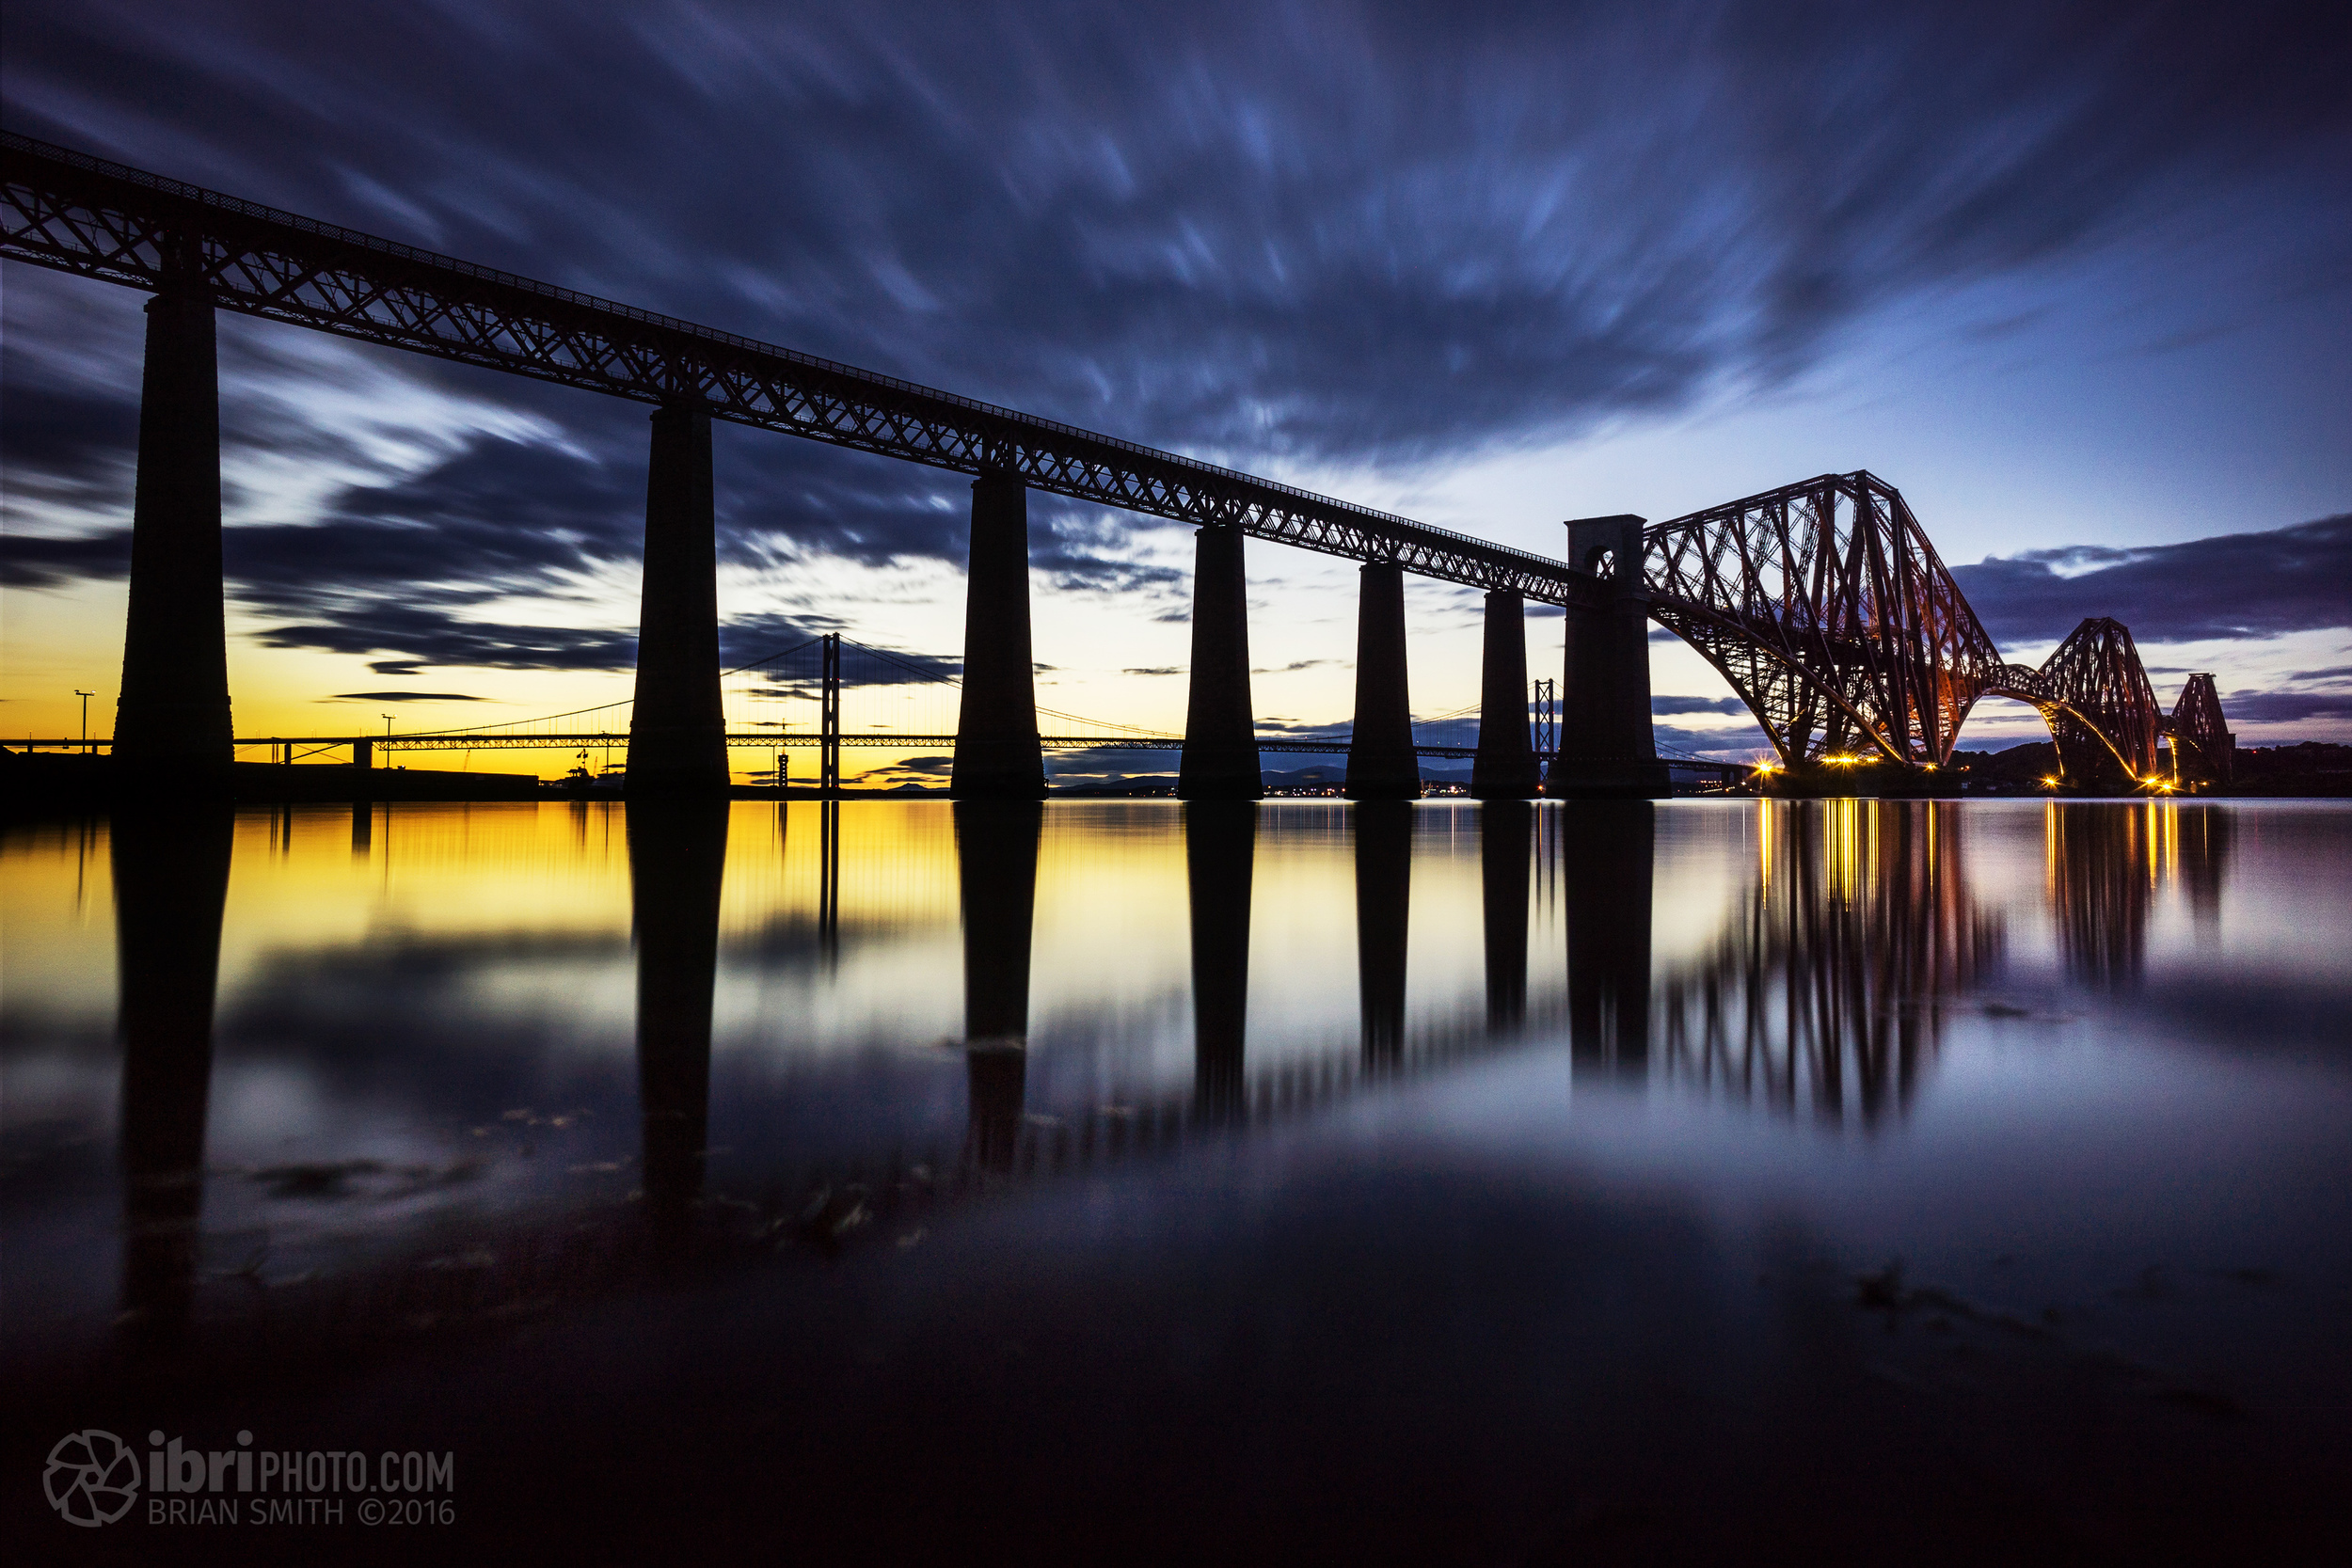 The  Forth Bridge  shot.Had to get it out of my system.